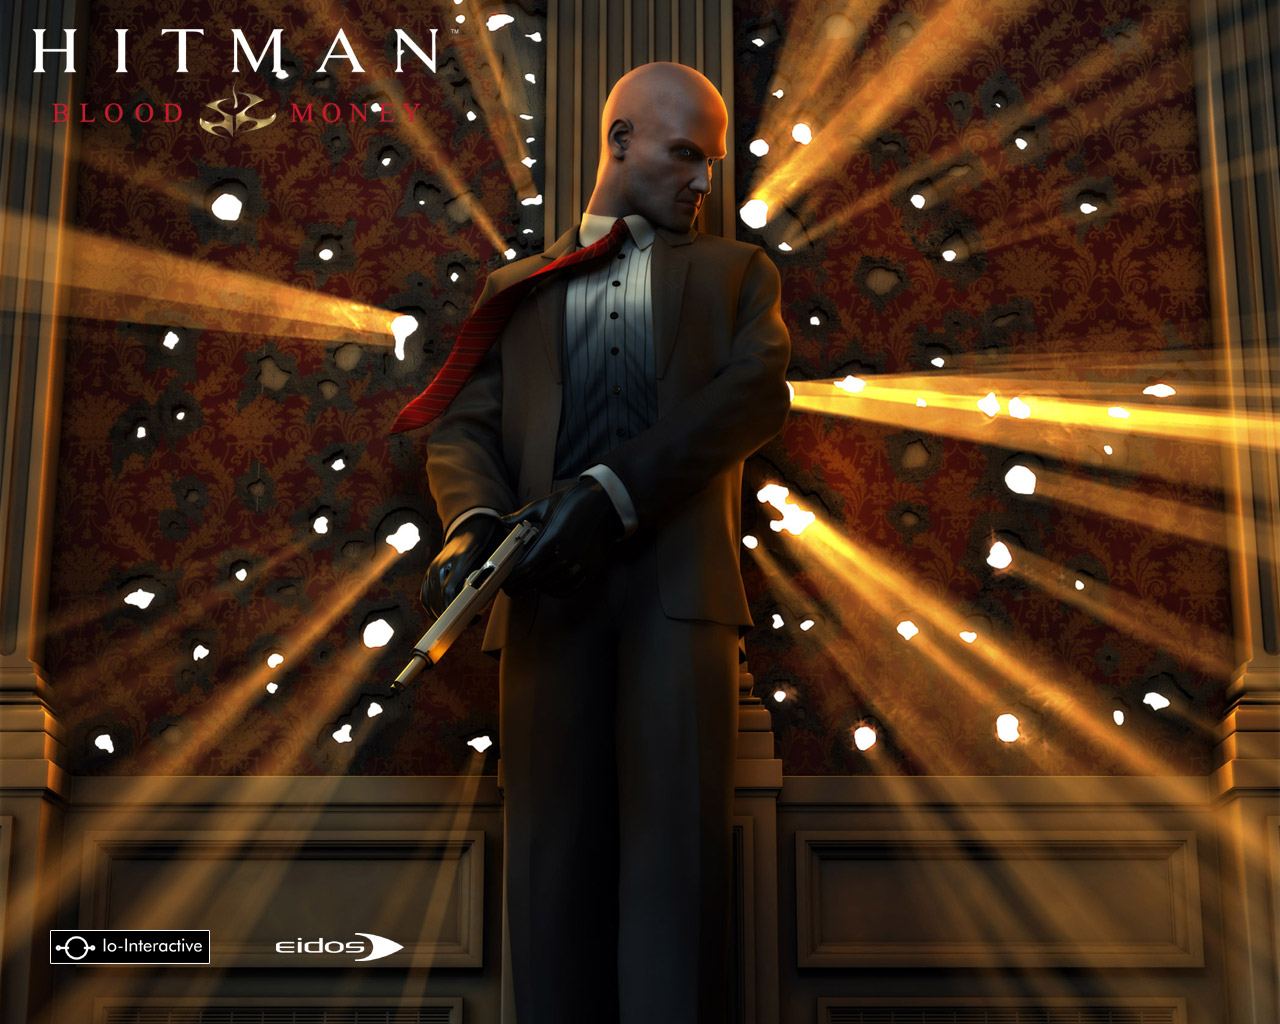 http://3.bp.blogspot.com/-6Qg0usc5XIs/TddrcuHSYDI/AAAAAAAAB2s/0hXXoz6Gu-I/s1600/Hitman_Blood+money_wallpaper+04_1280x1024.jpg